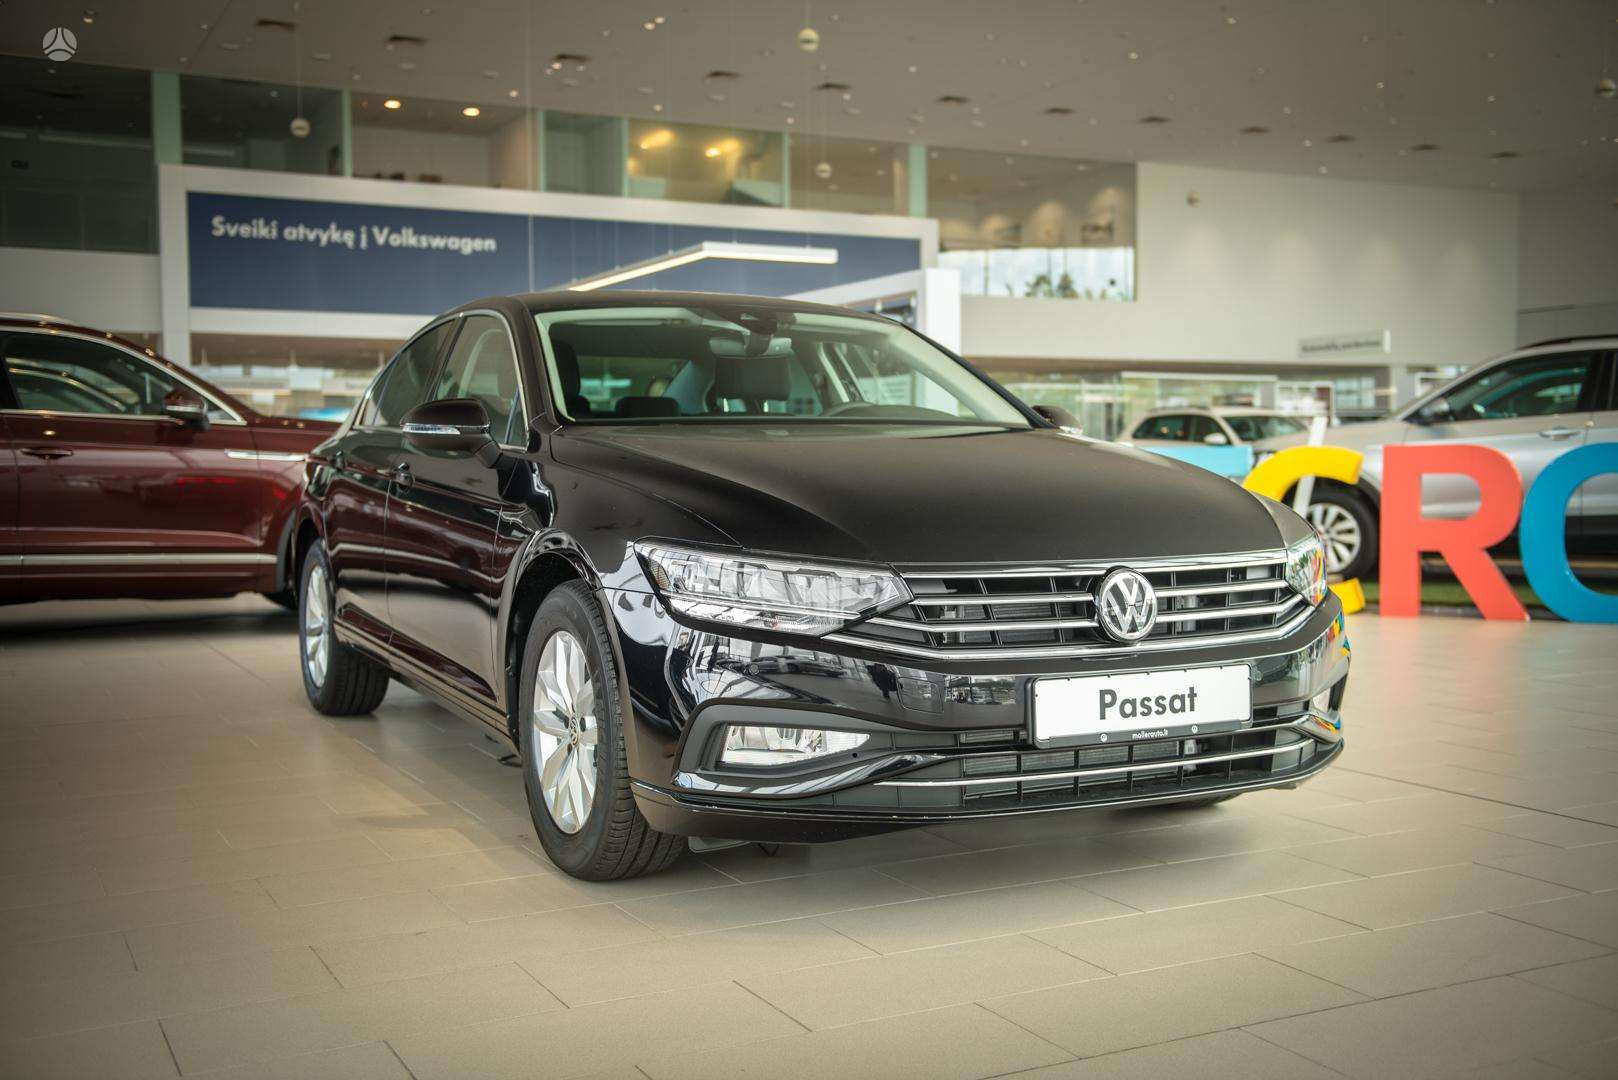 Volkswagen Passat Business 1.5 TSI (Facelift)